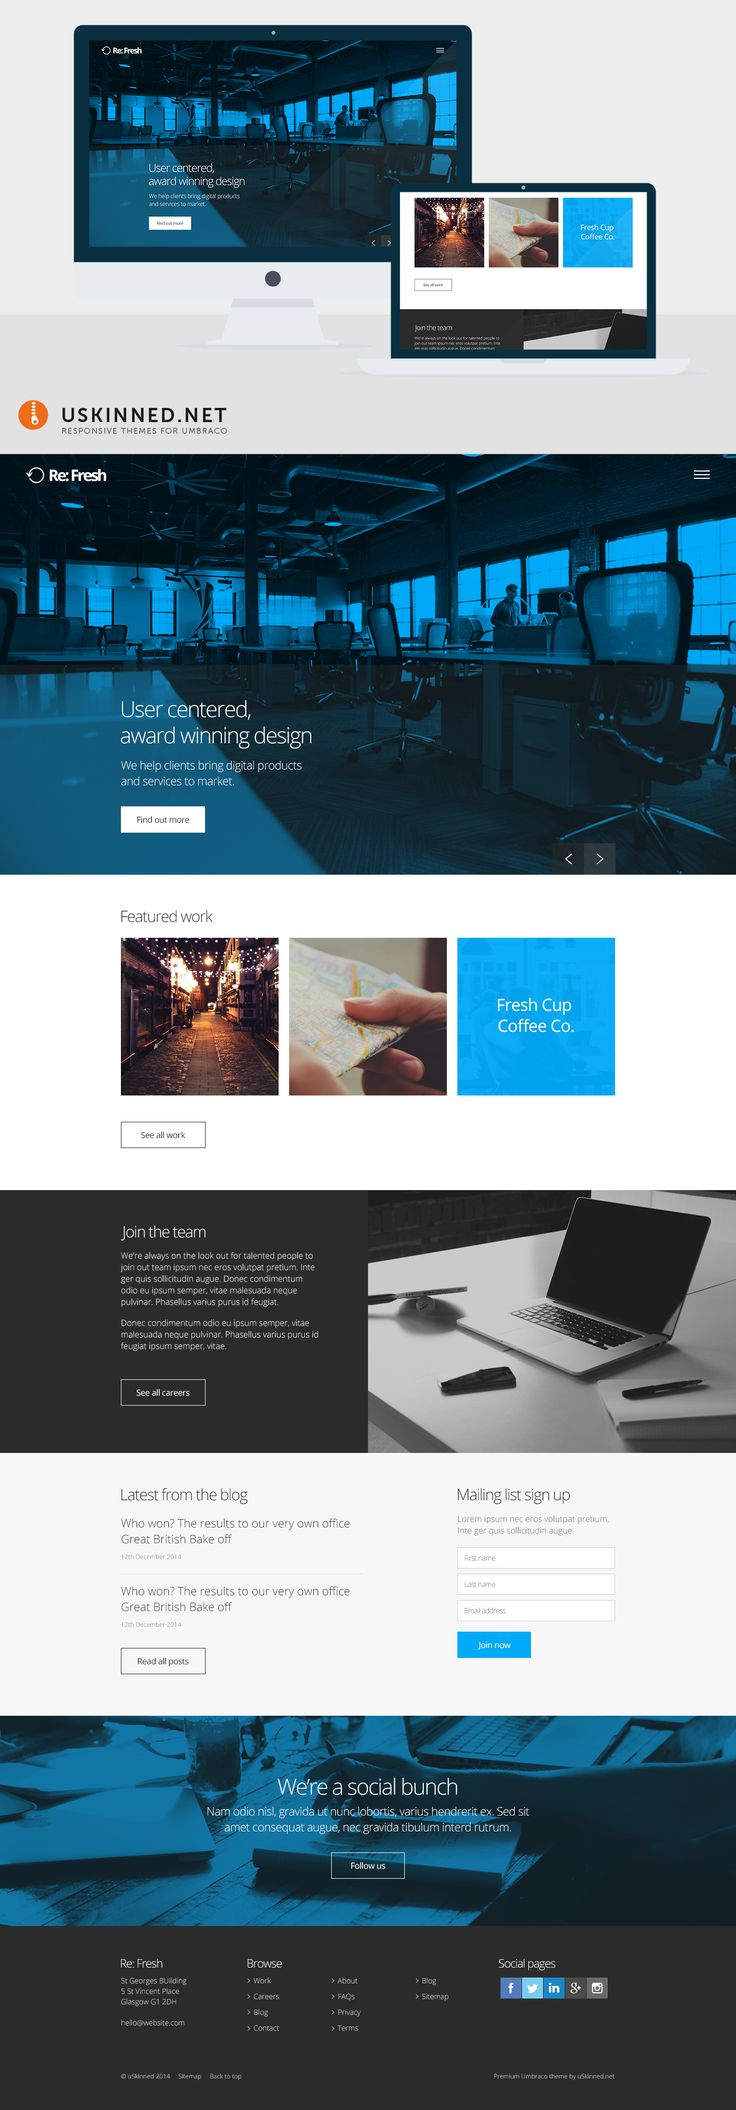 15 best images about responsive umbraco theme designs on pinterest